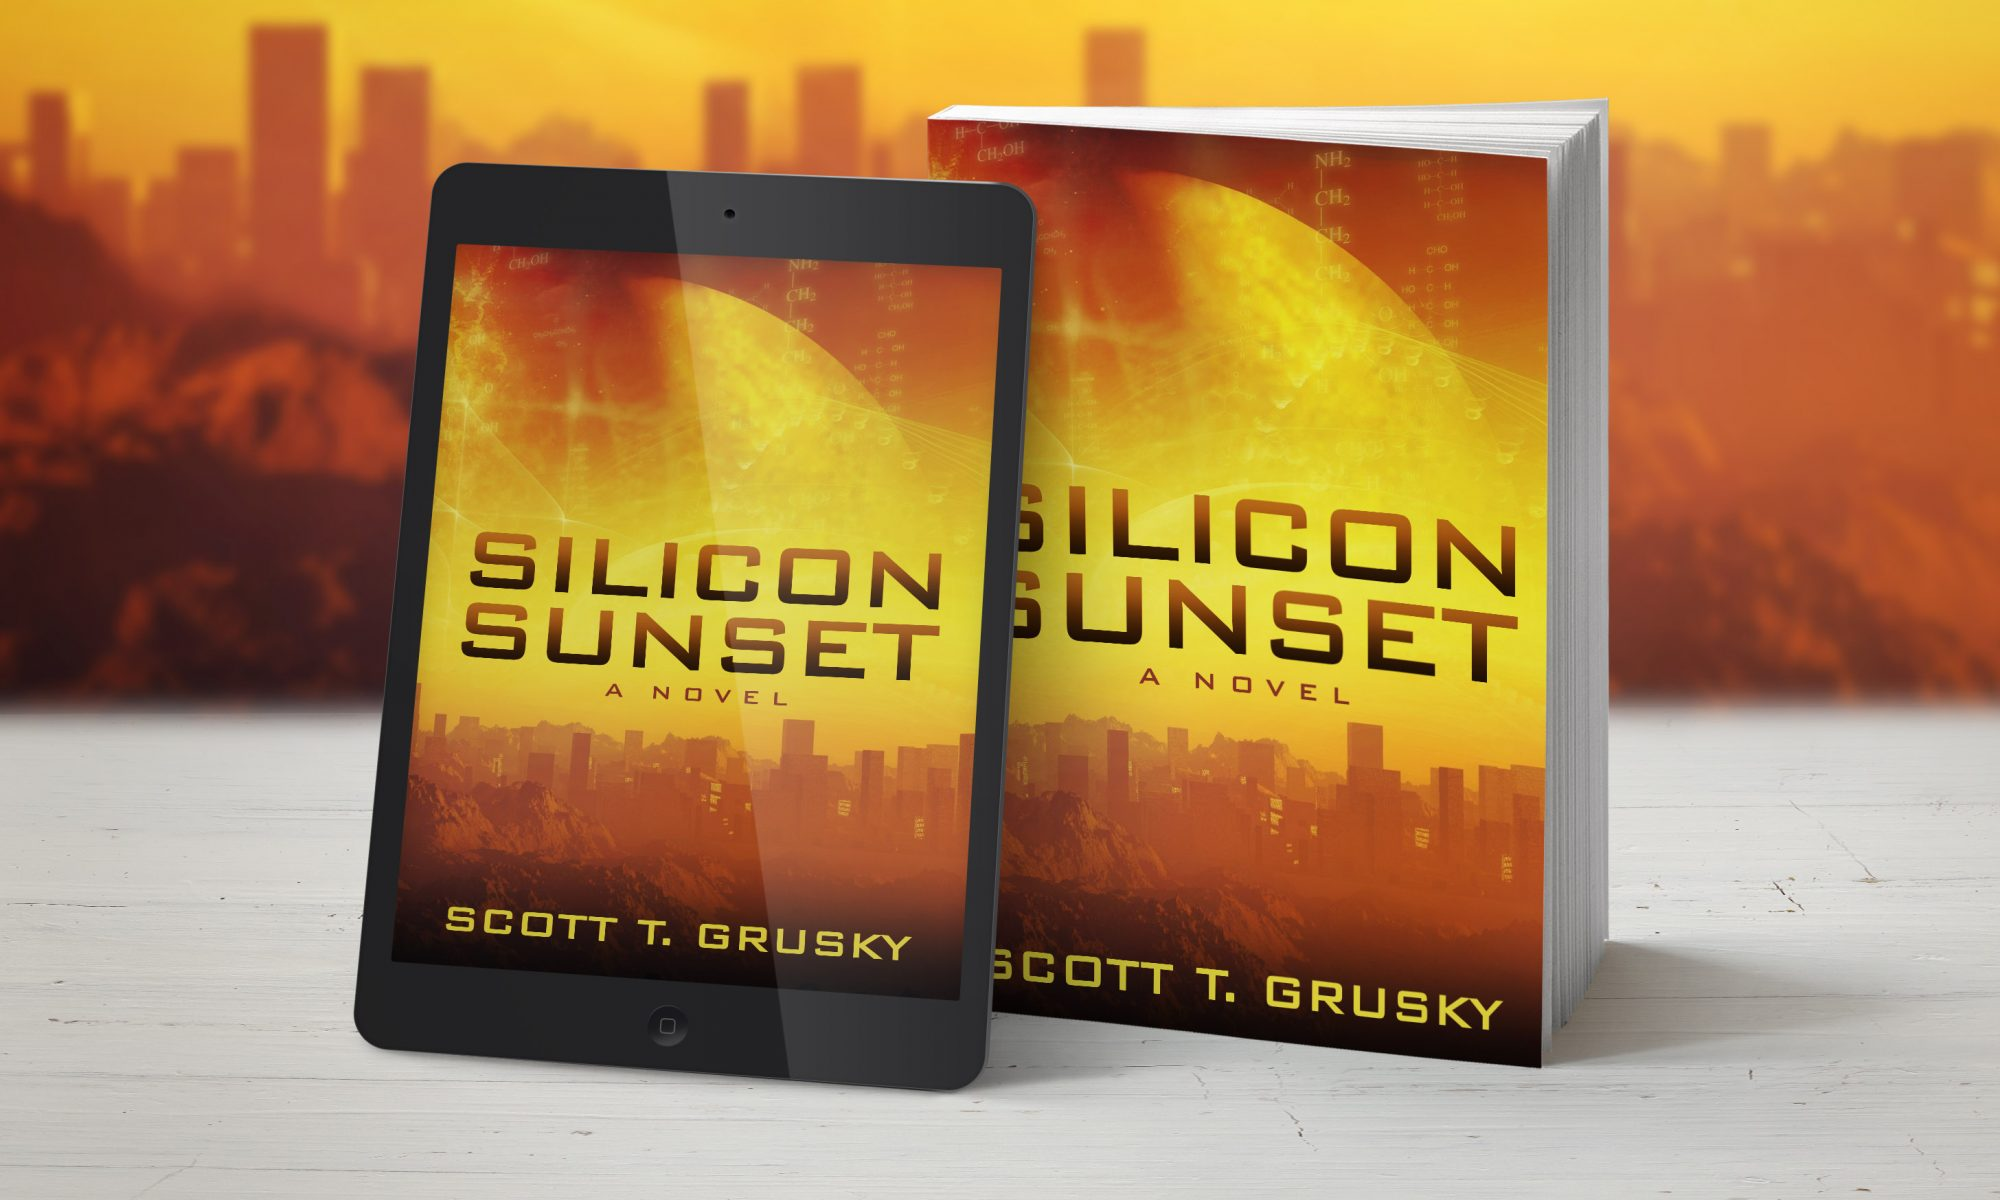 Silicon Sunset by Scott T. Grusky